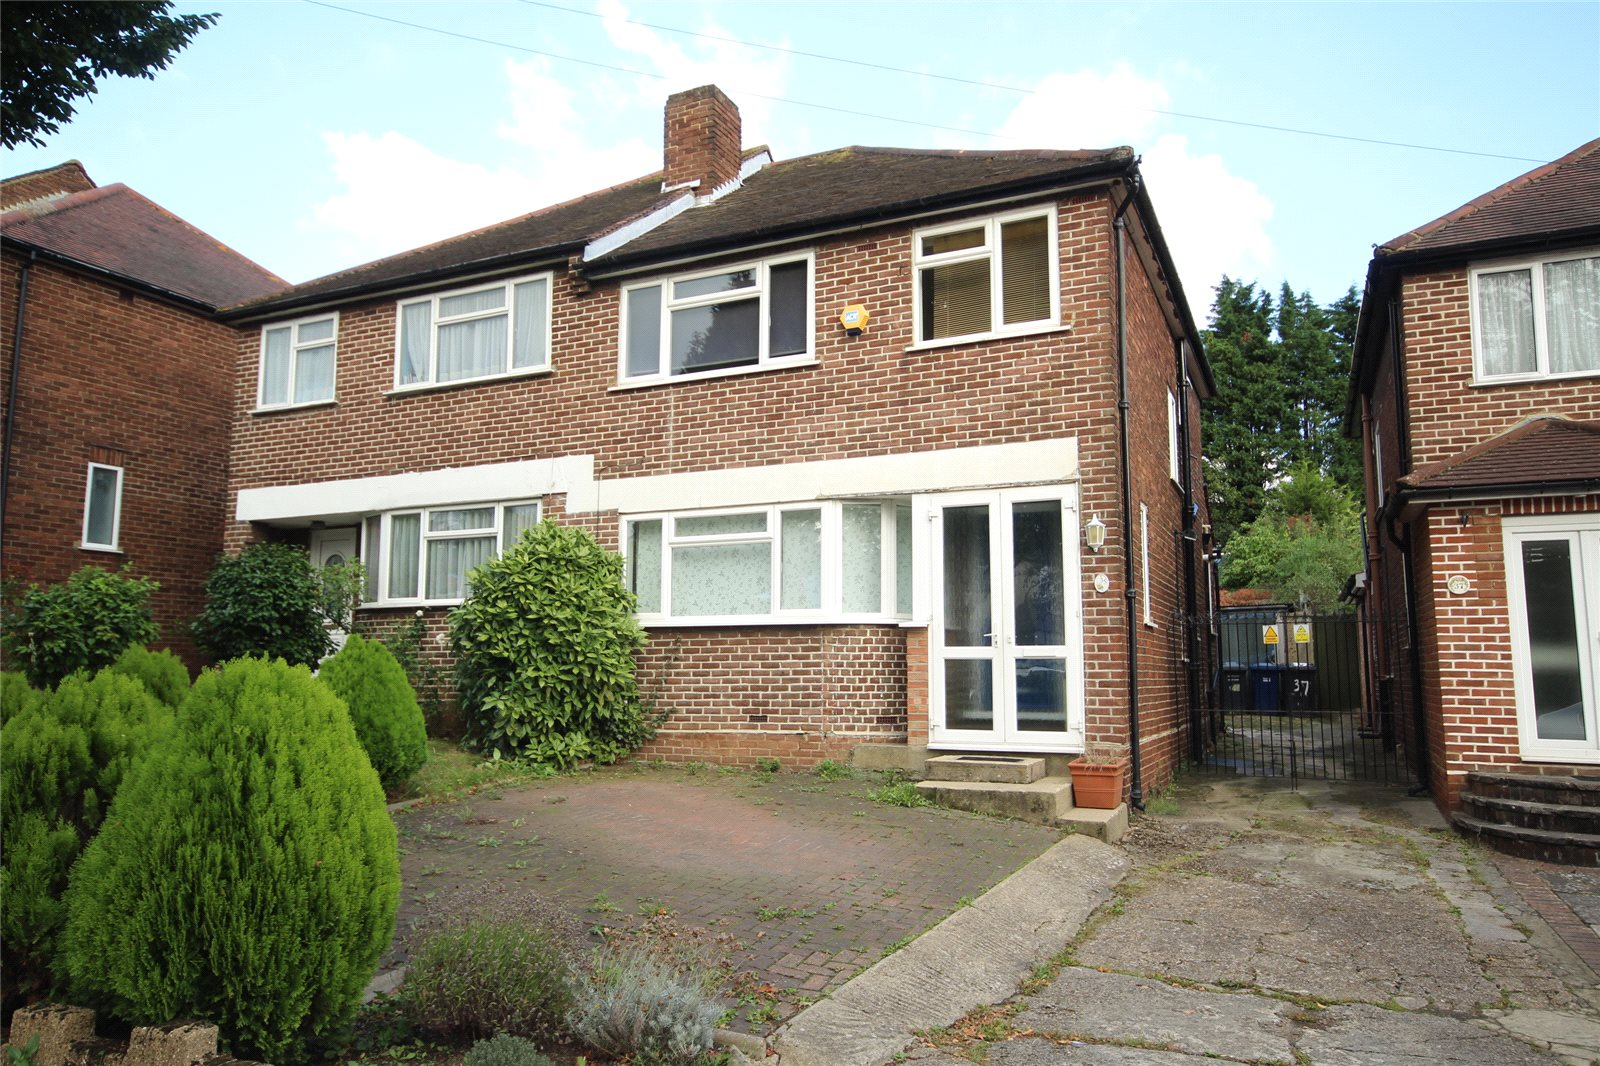 3 Bedrooms Terraced House for sale in Engel Park Mill Hill London NW7